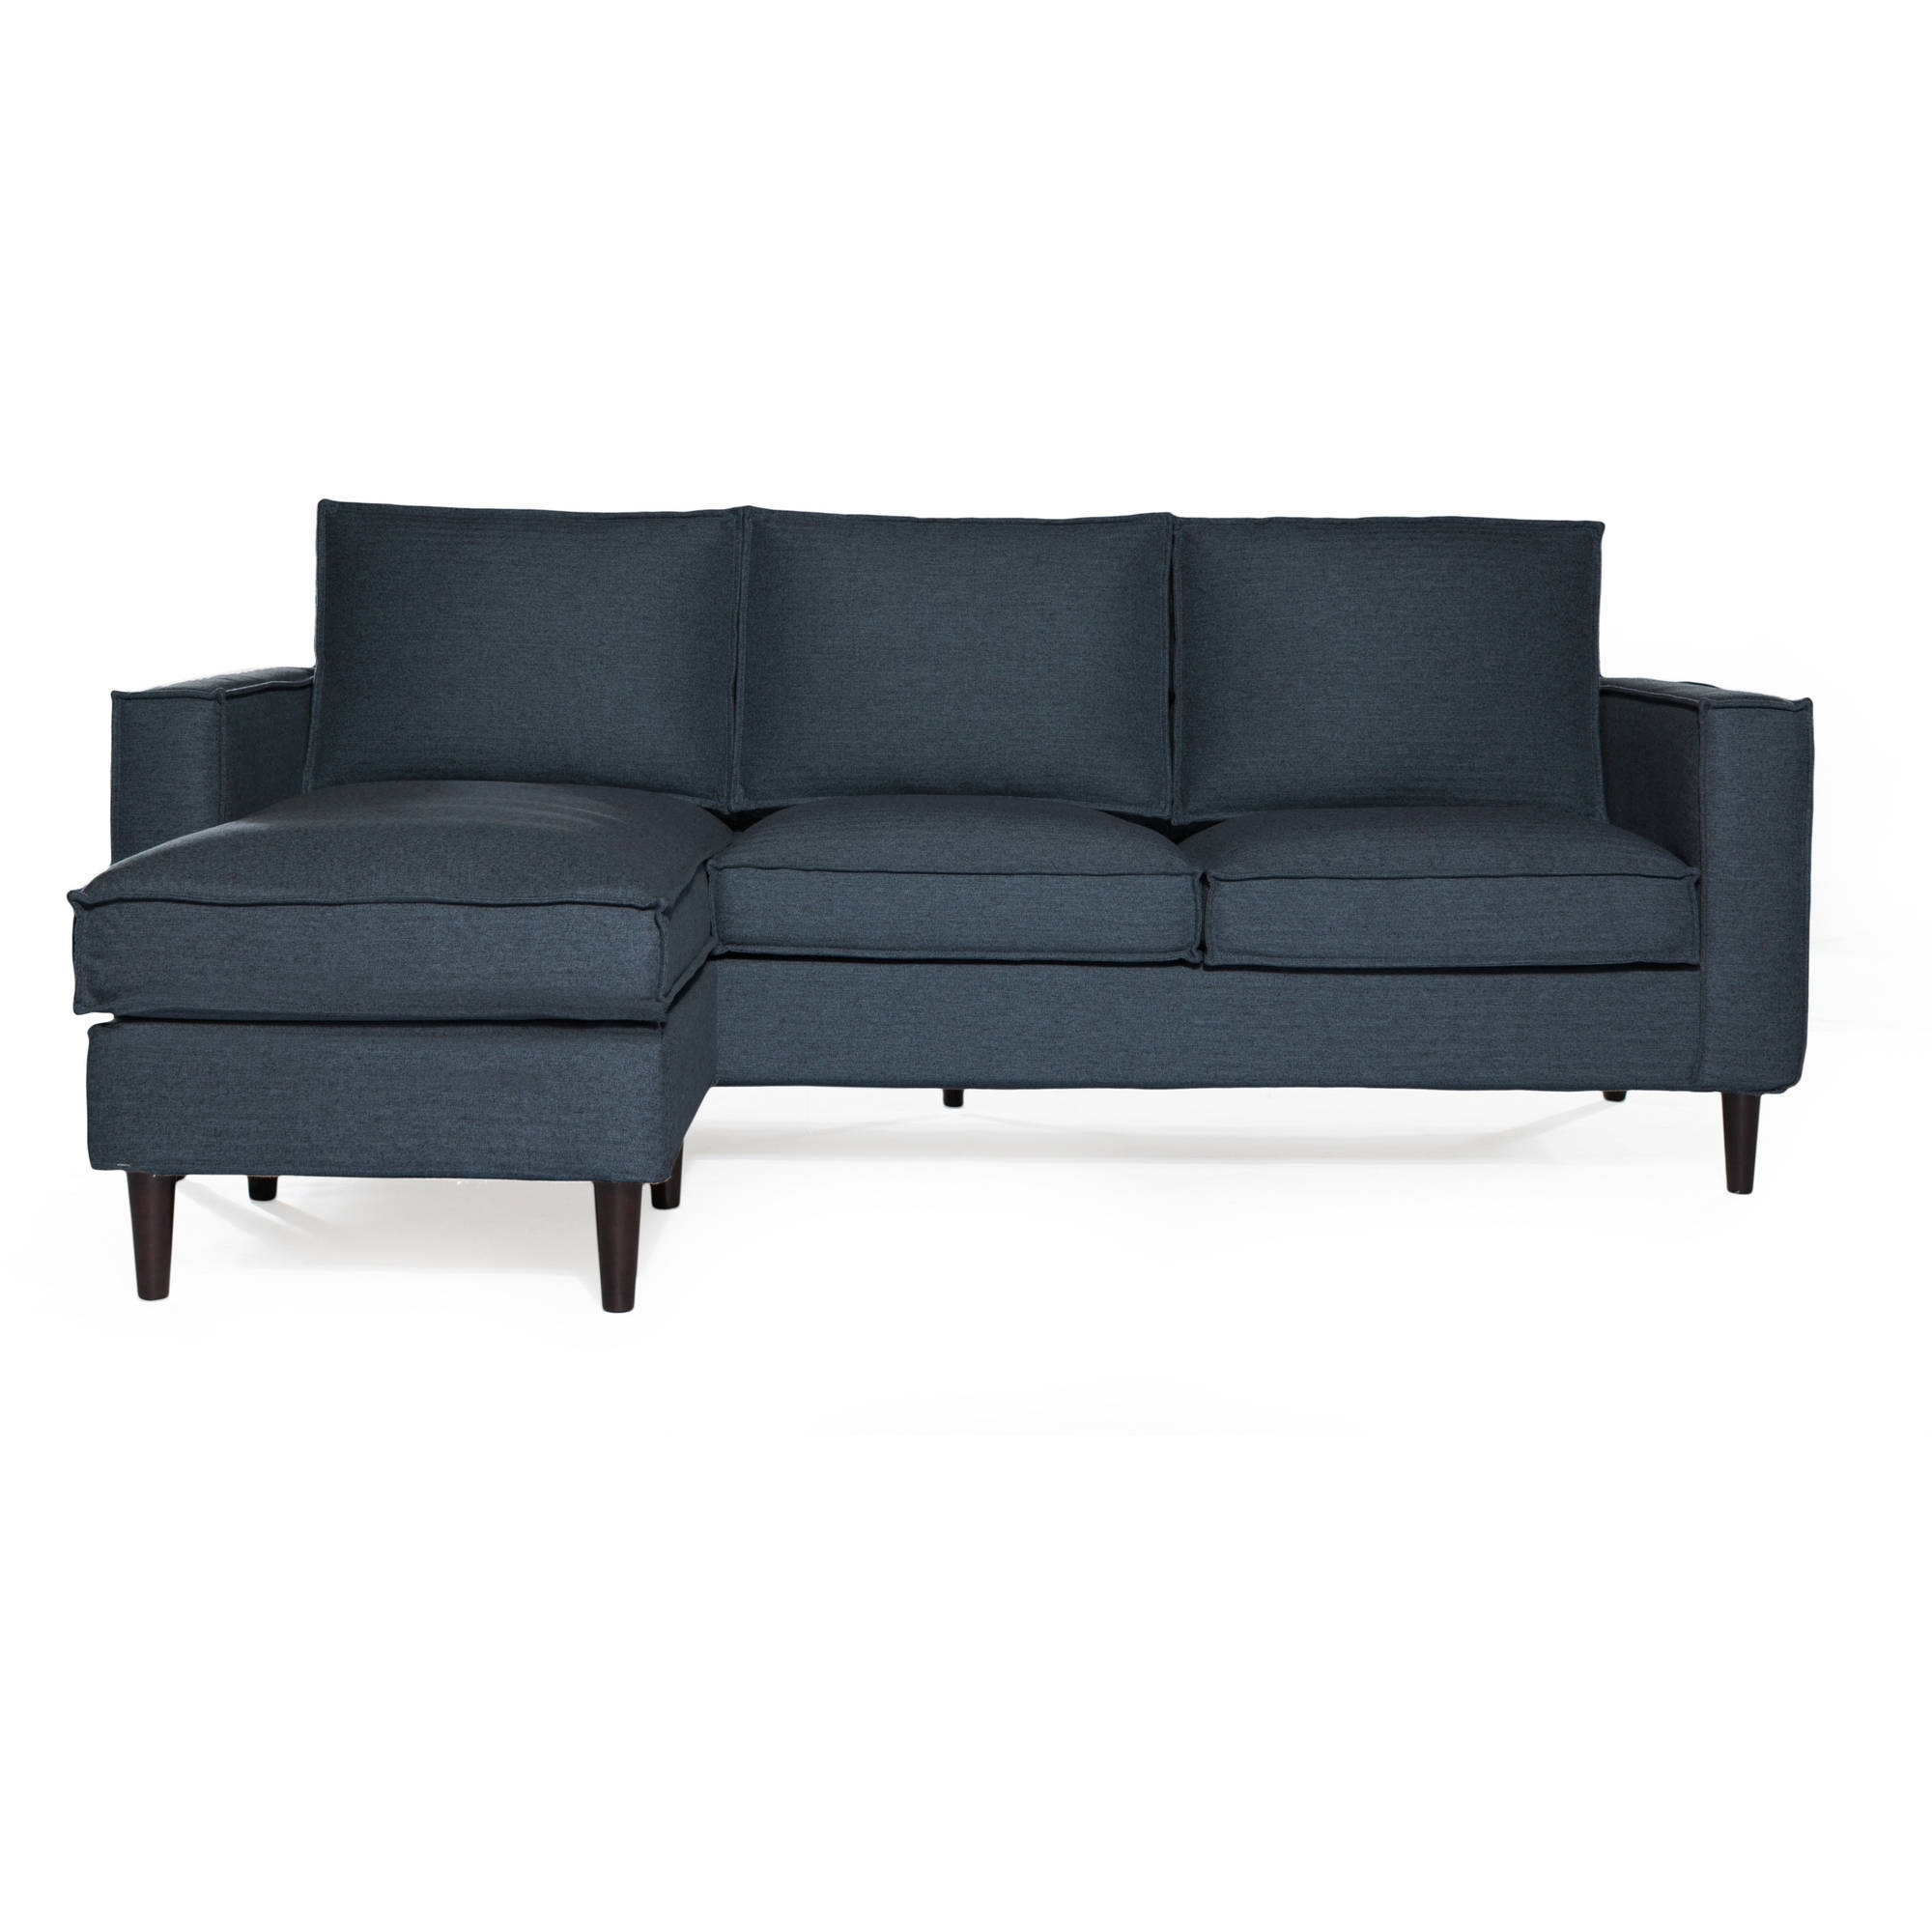 Chaise Loveseats Intended For 2018 Sofas & Couches – Walmart (View 12 of 15)